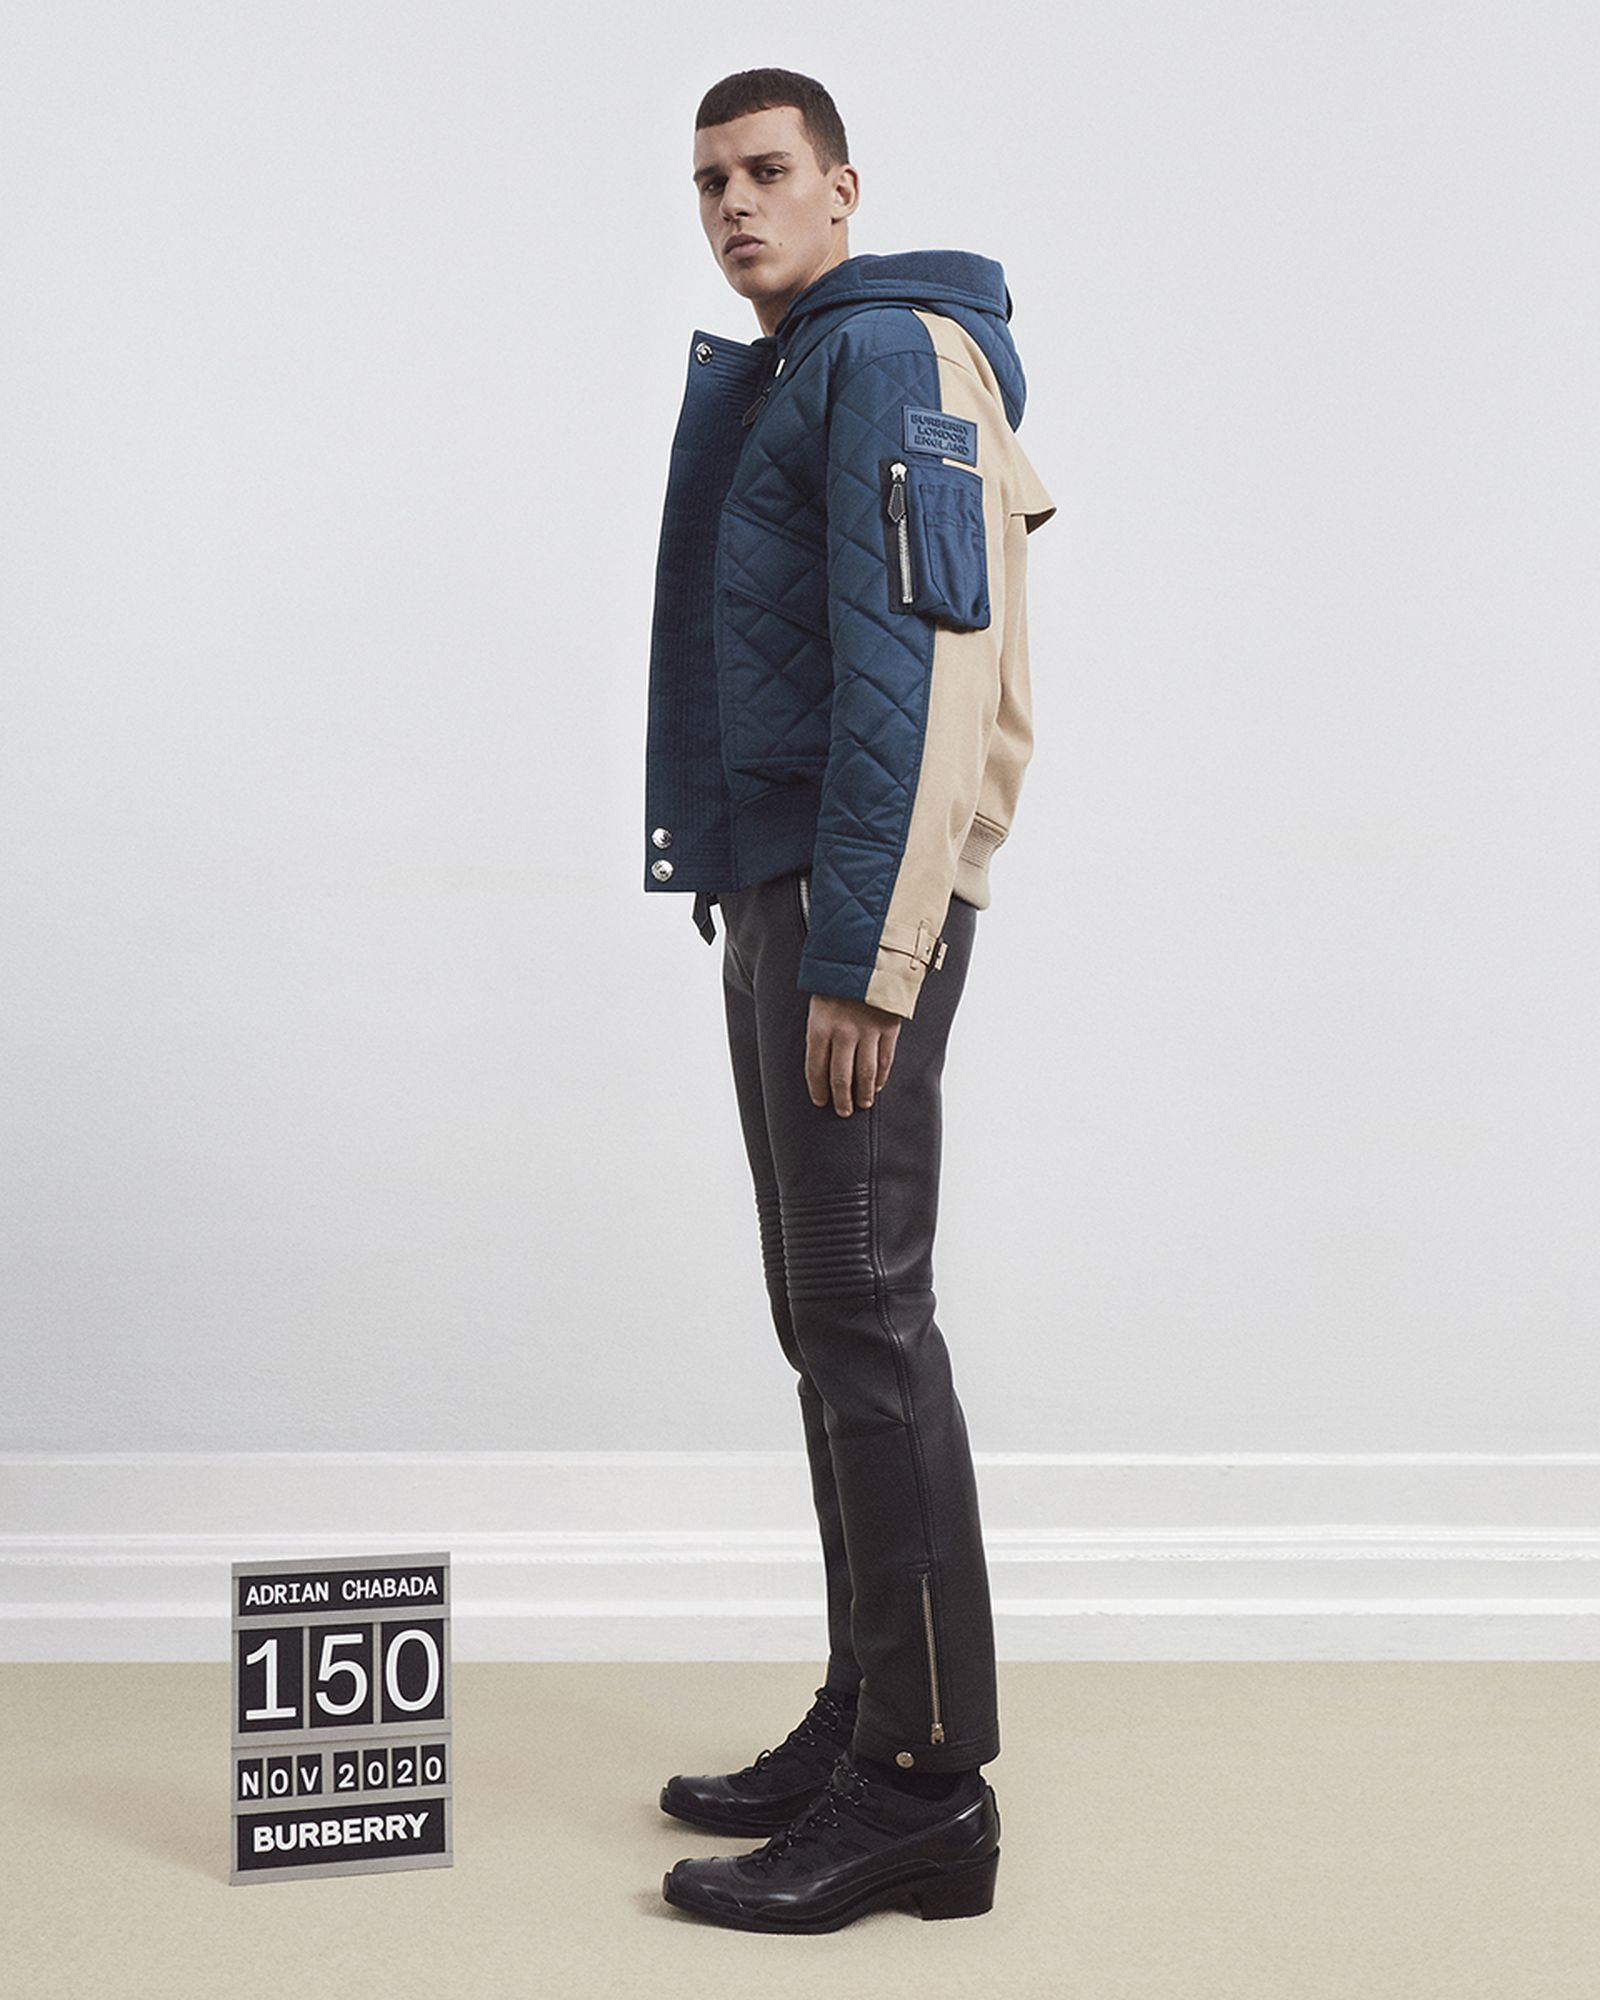 burberry-future-archive-collection-10